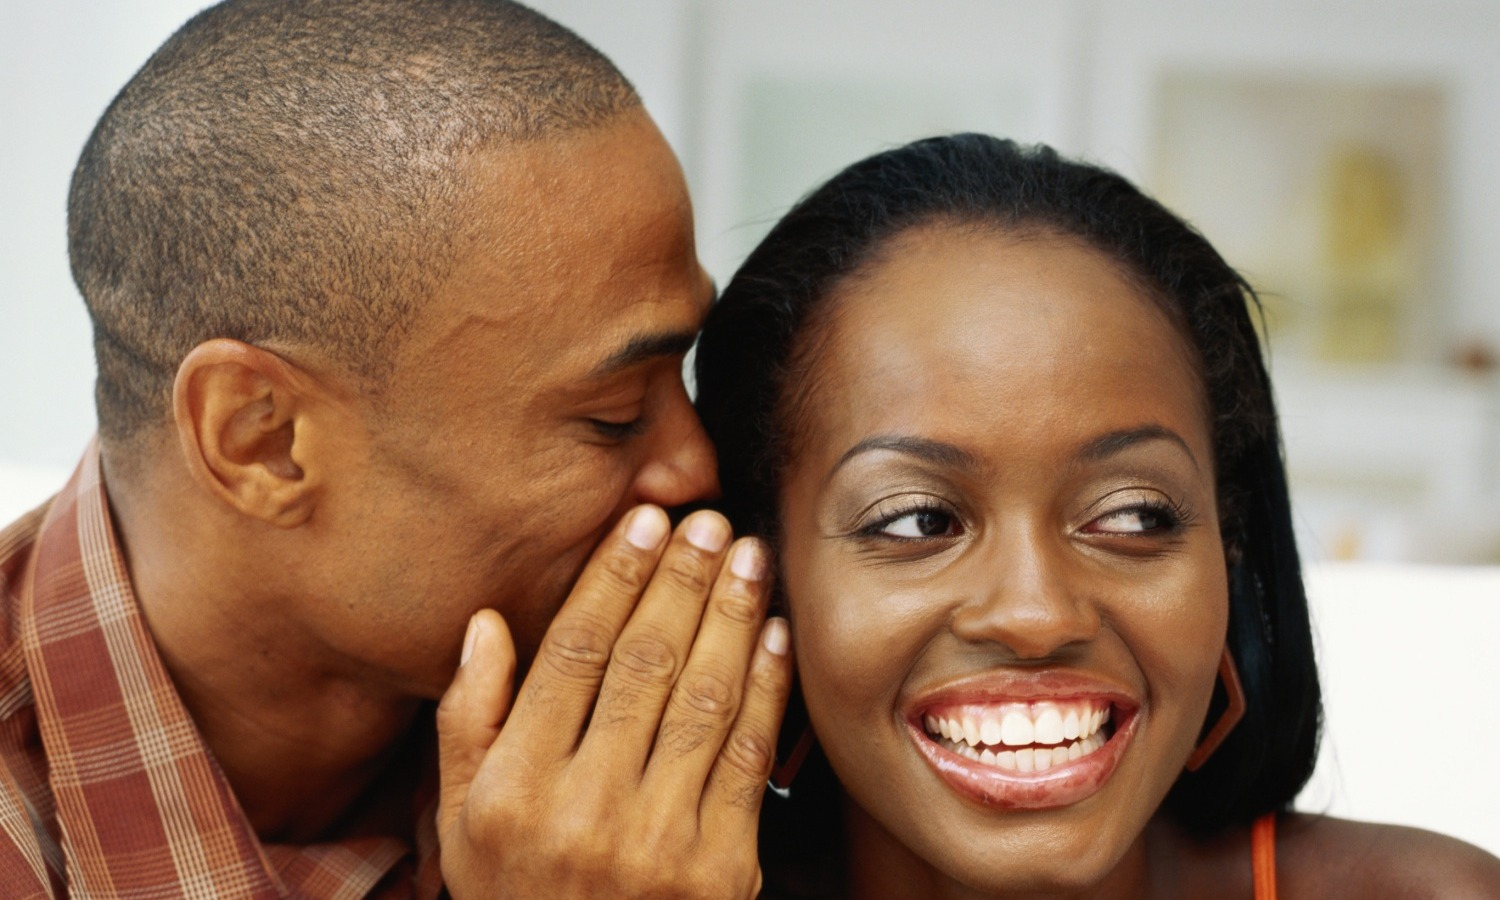 How do you know if your husband has cheated